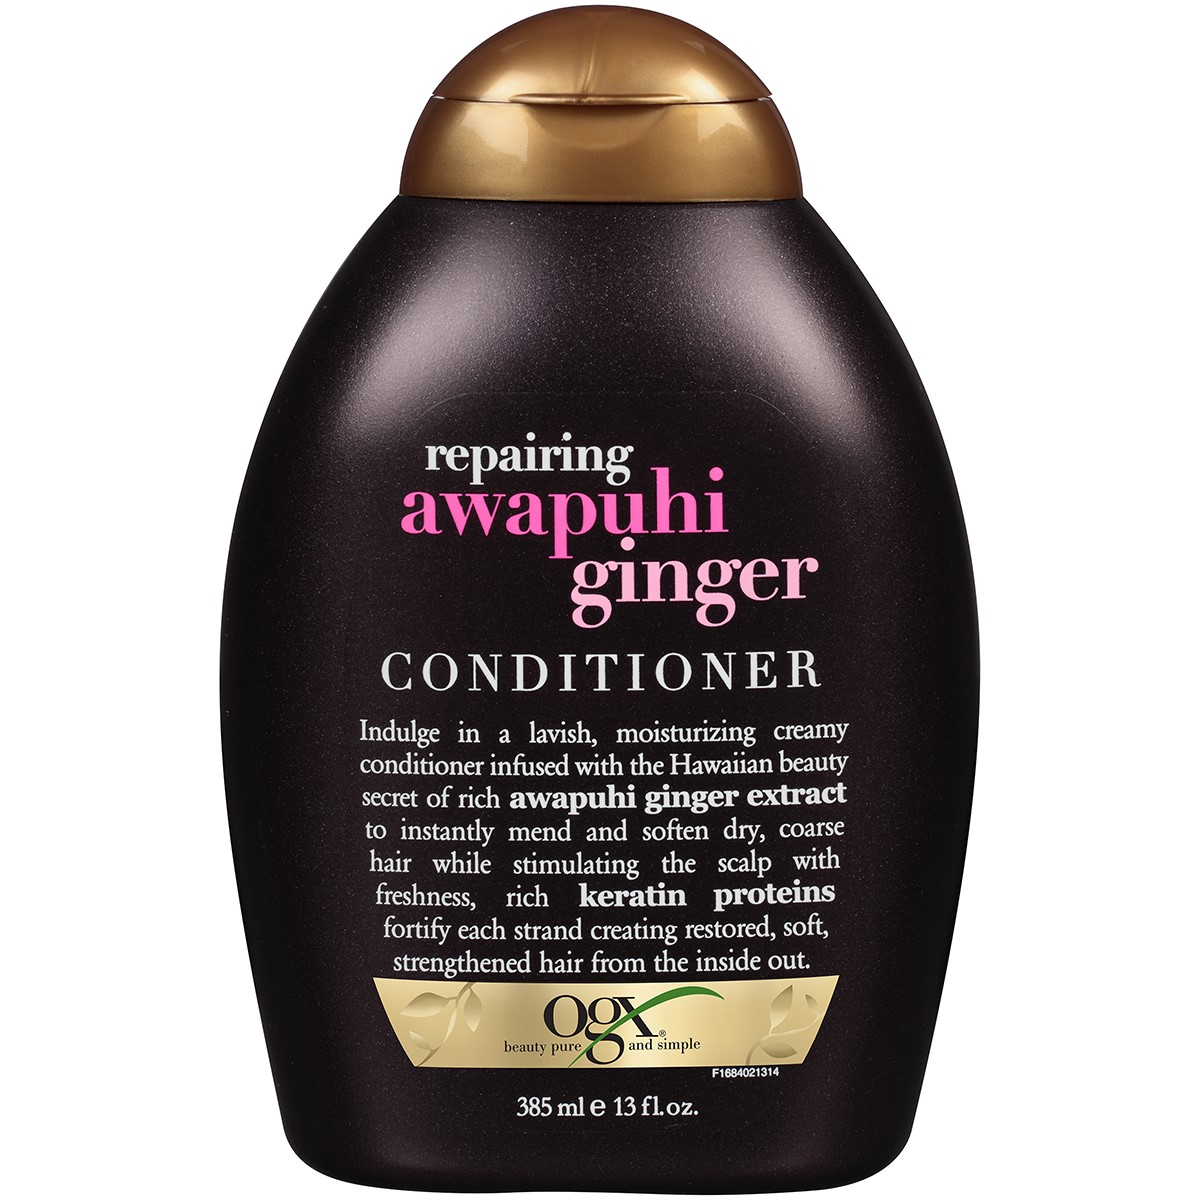 OGX Repairing Awapuhi Ginger Conditioner, 13.0 FL OZ